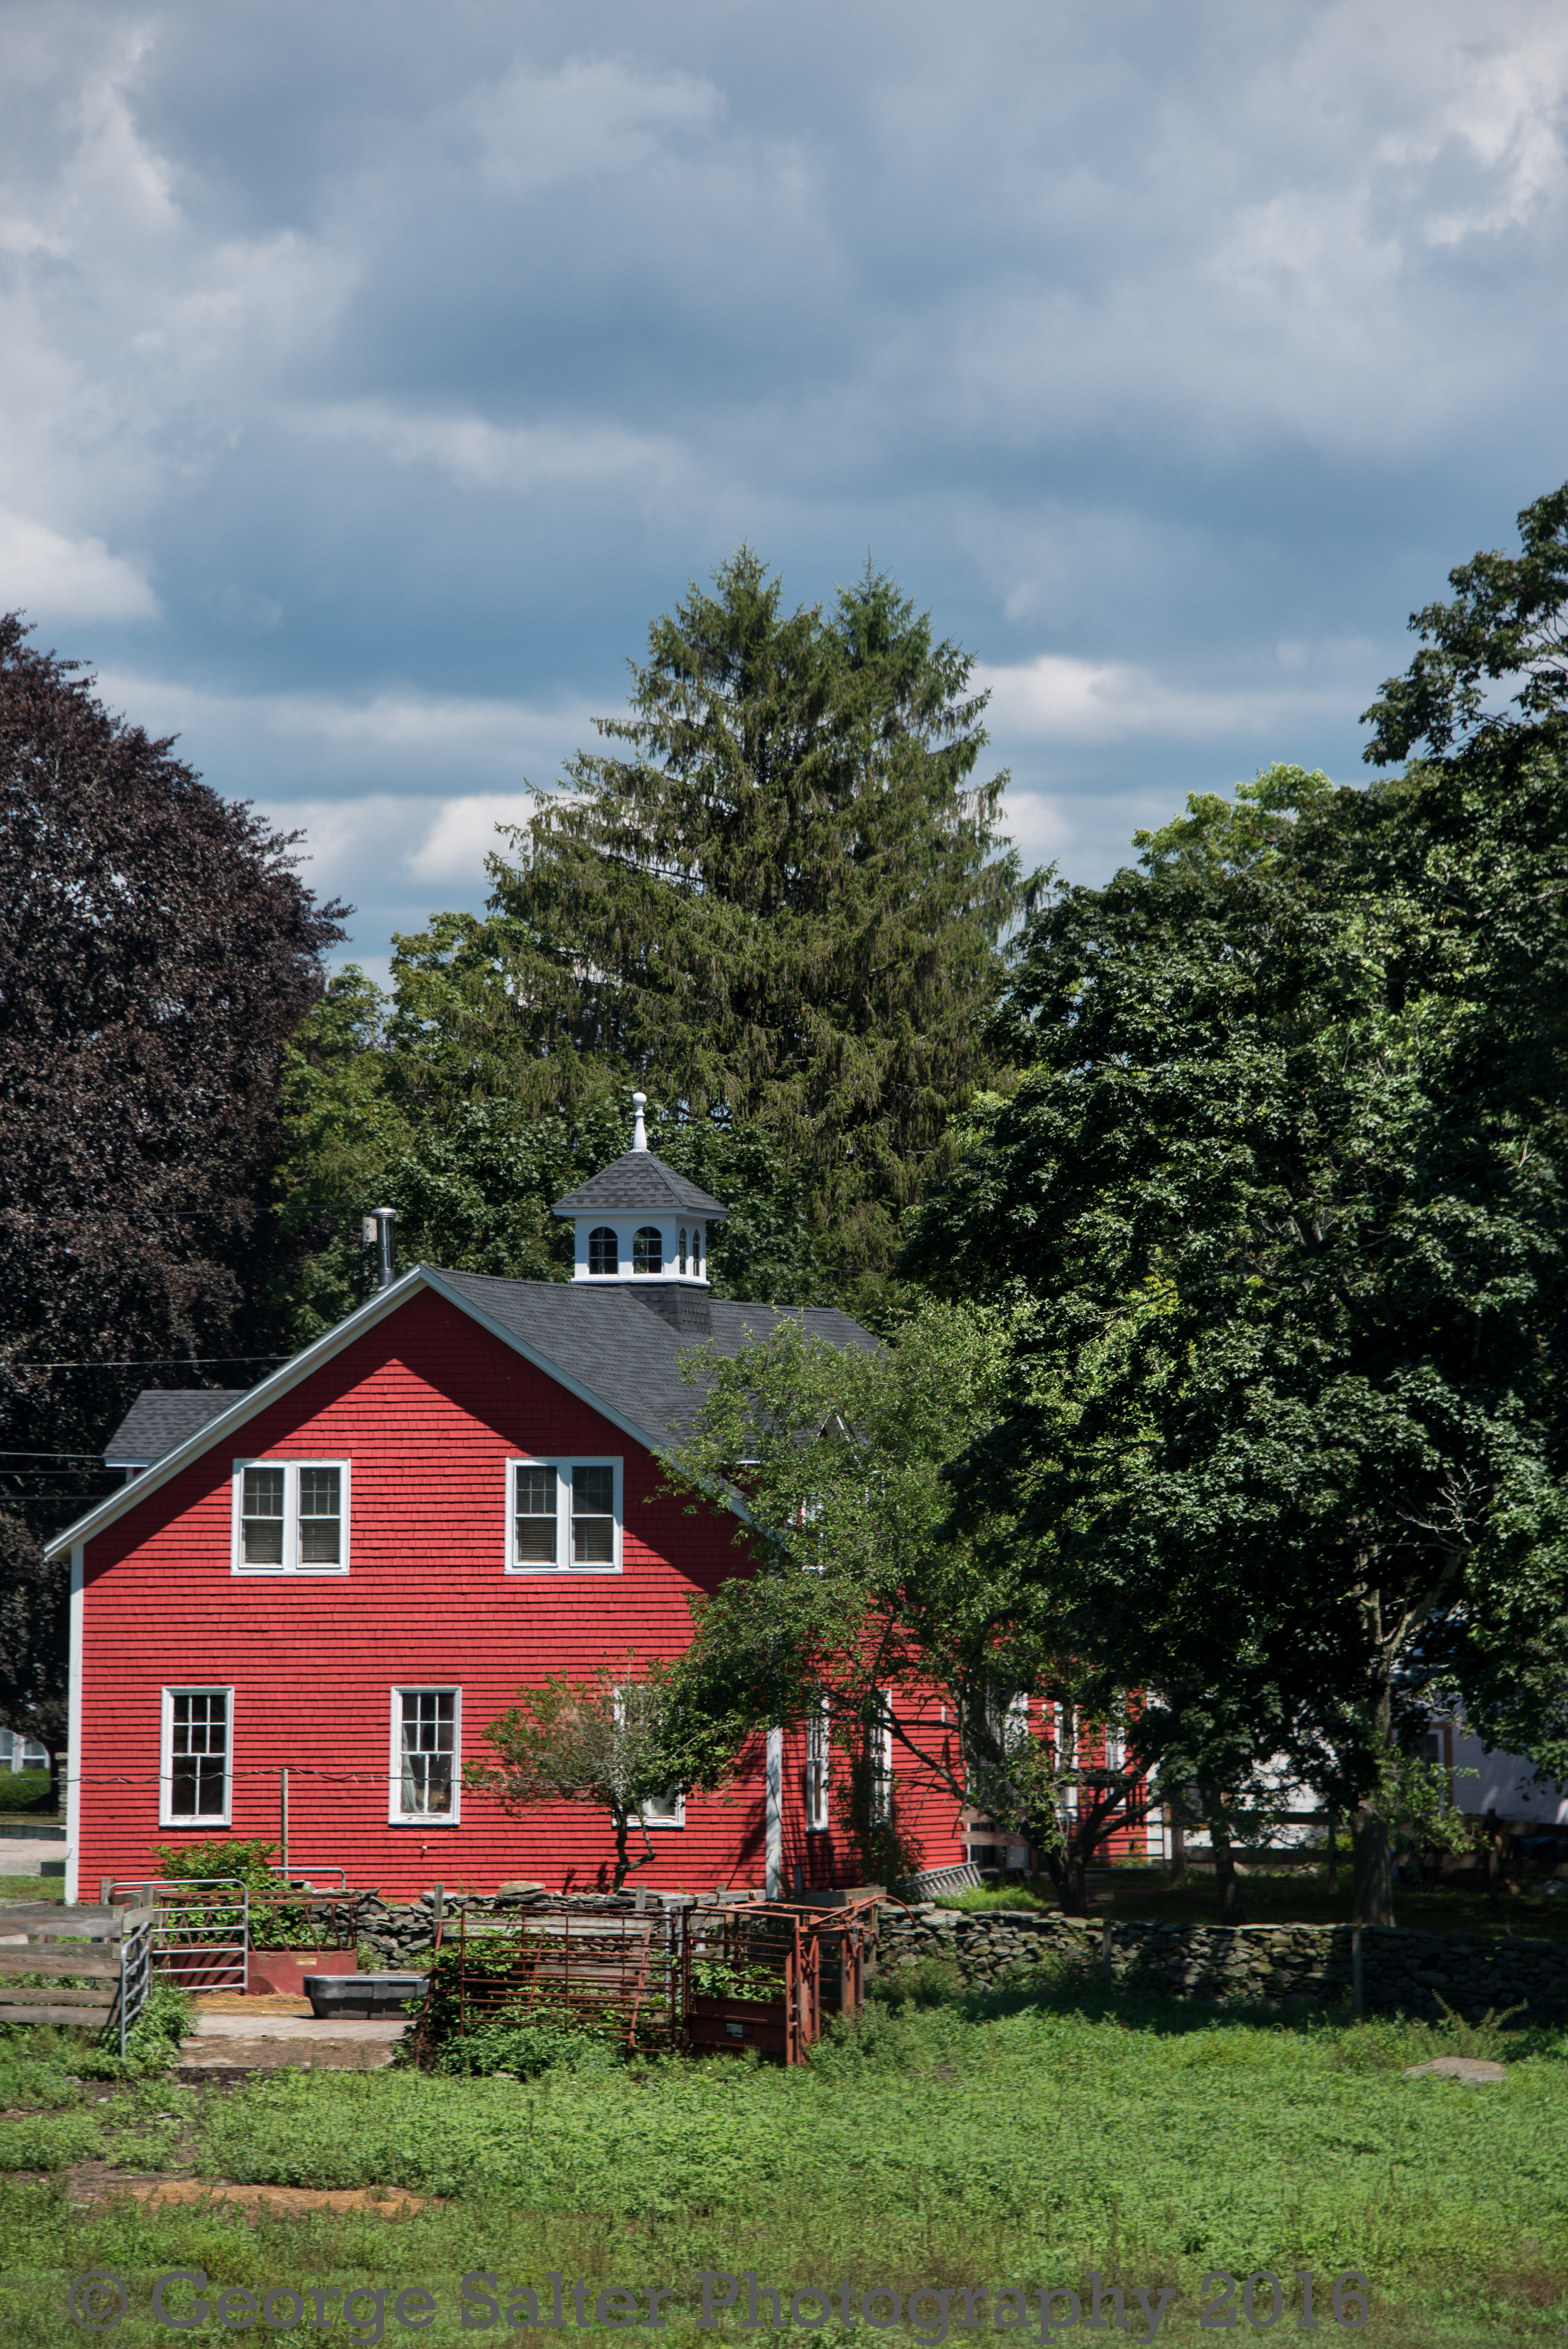 Red Barn in Suburbia